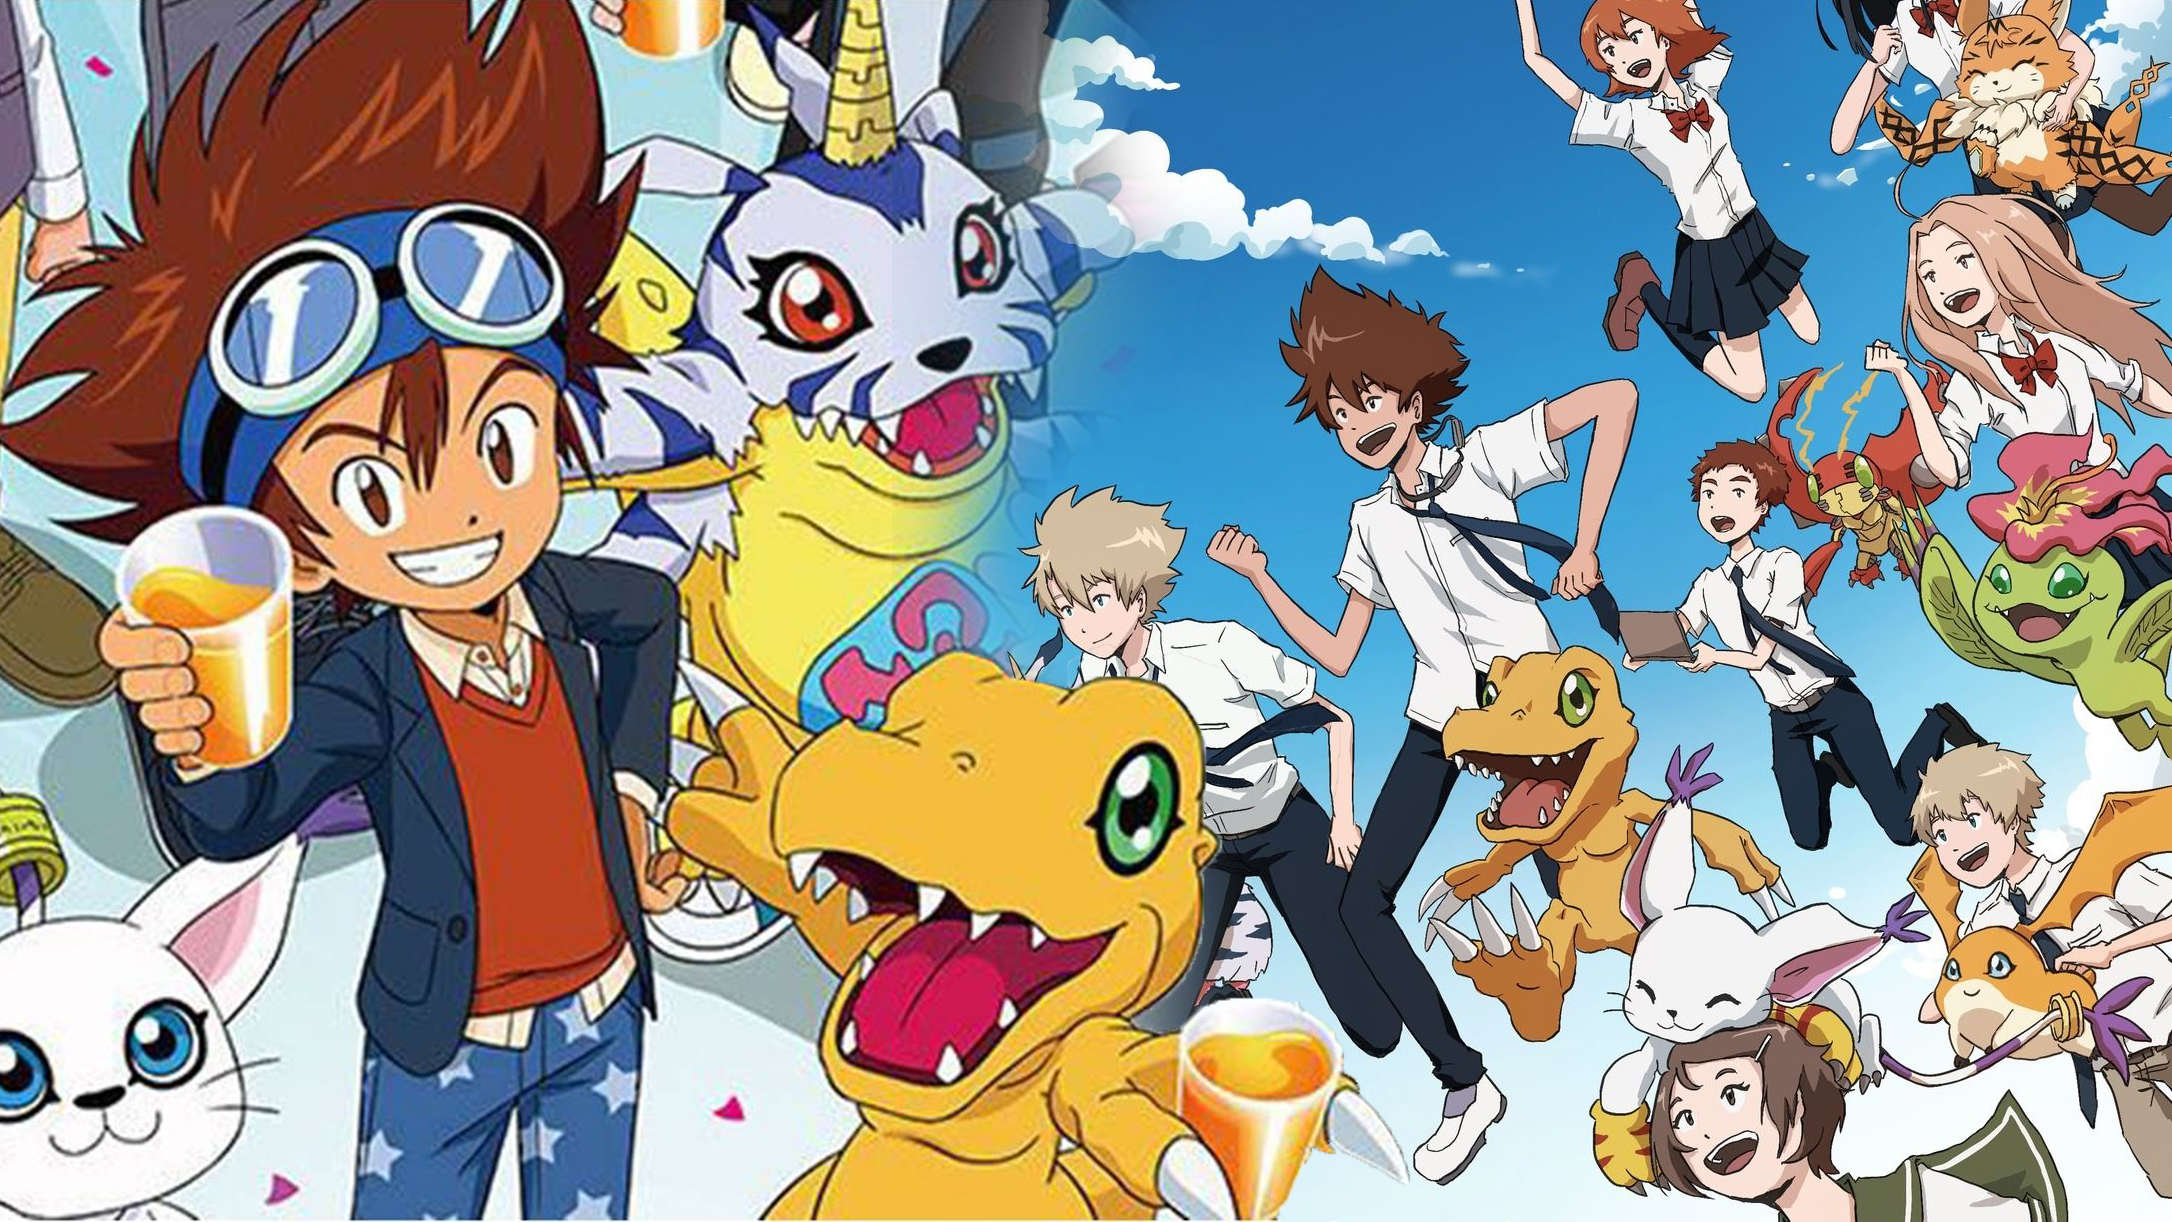 Digimon Adventure Episode 27: Release Date Announcement and Others!